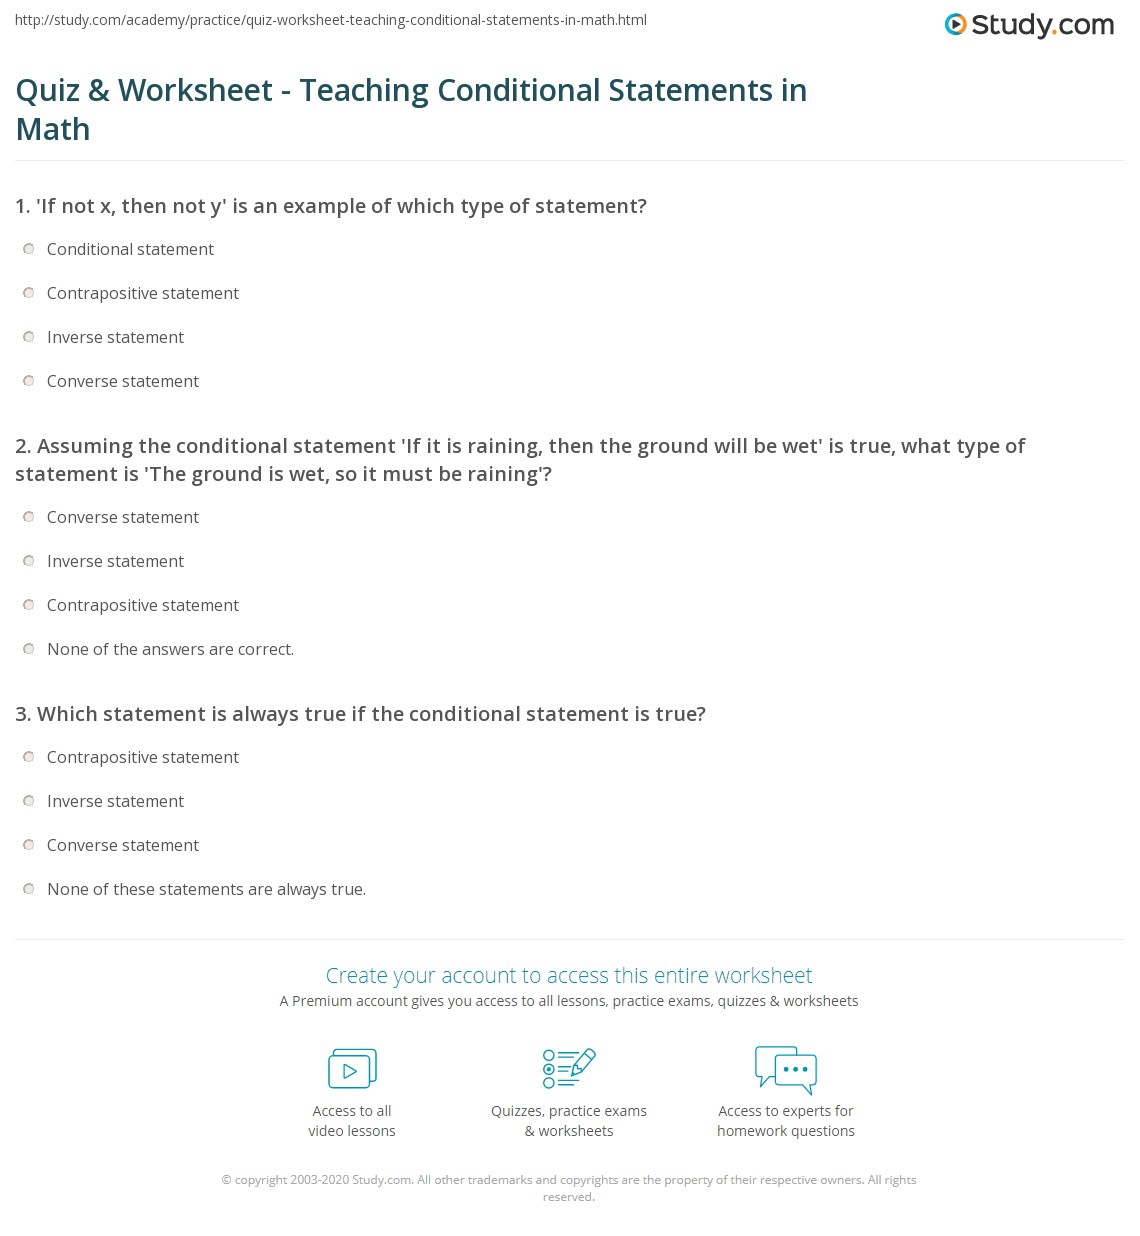 Conditional statements worksheet answers